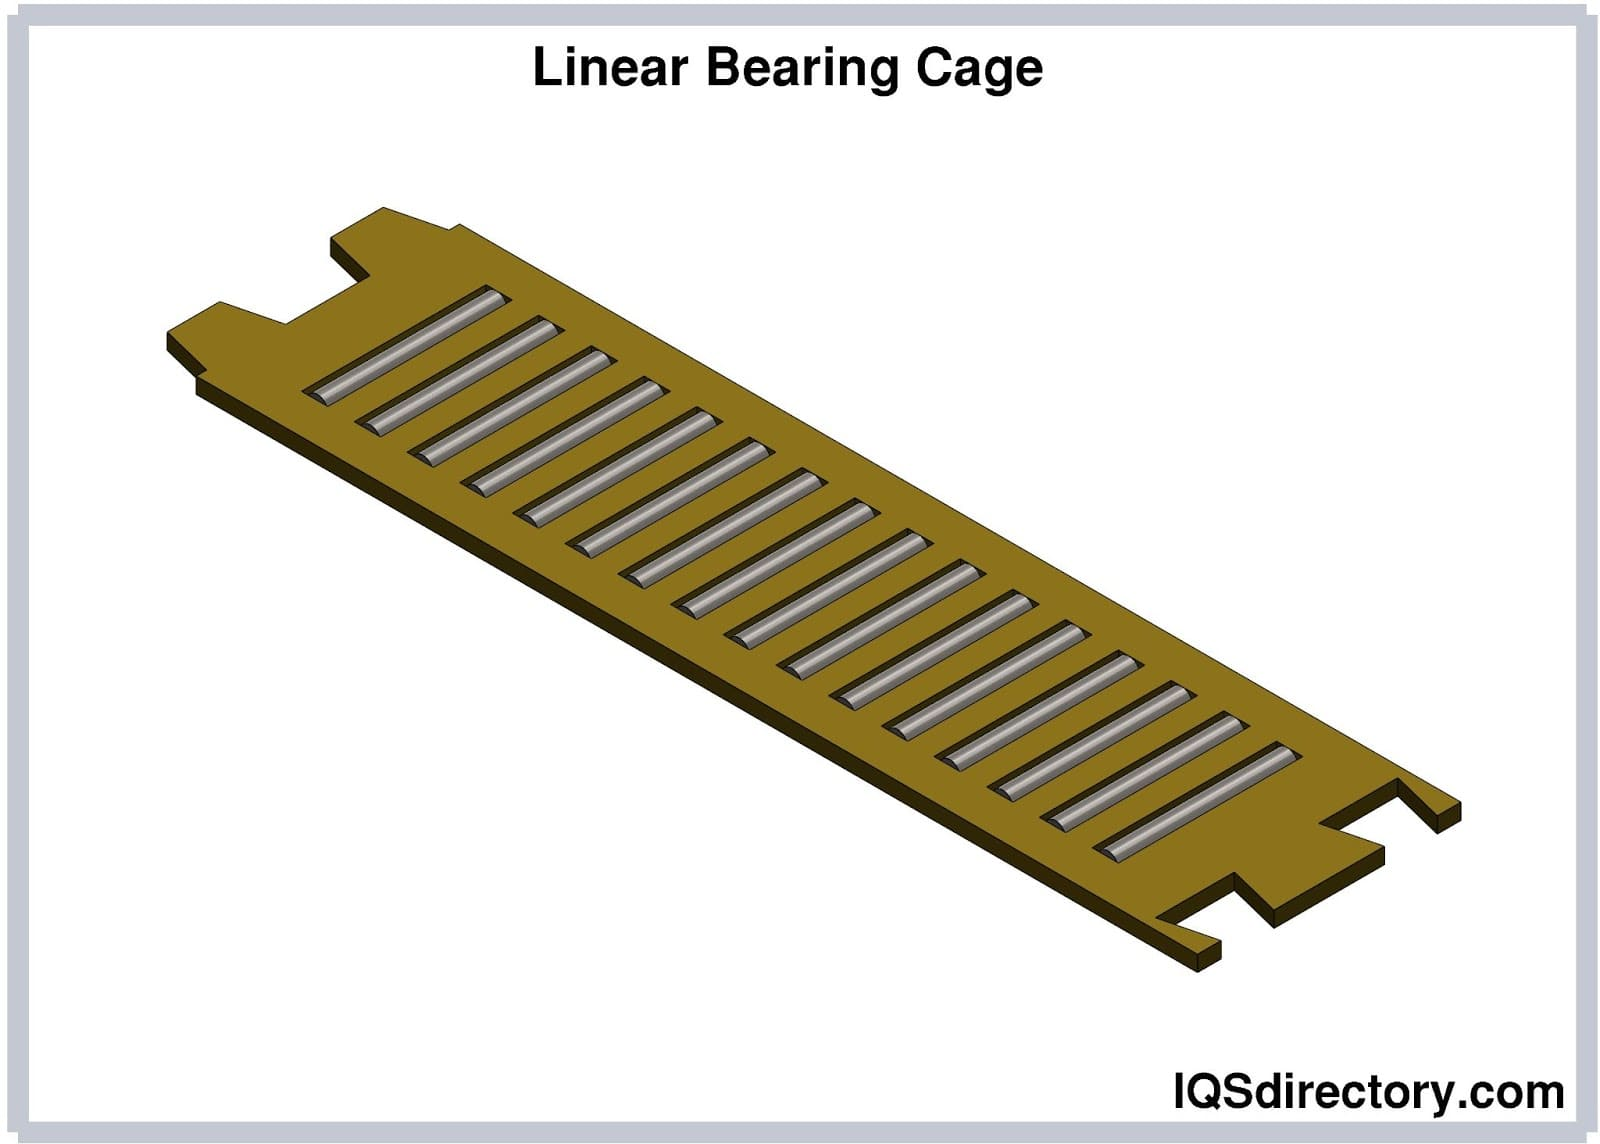 Linear Bearing Cage